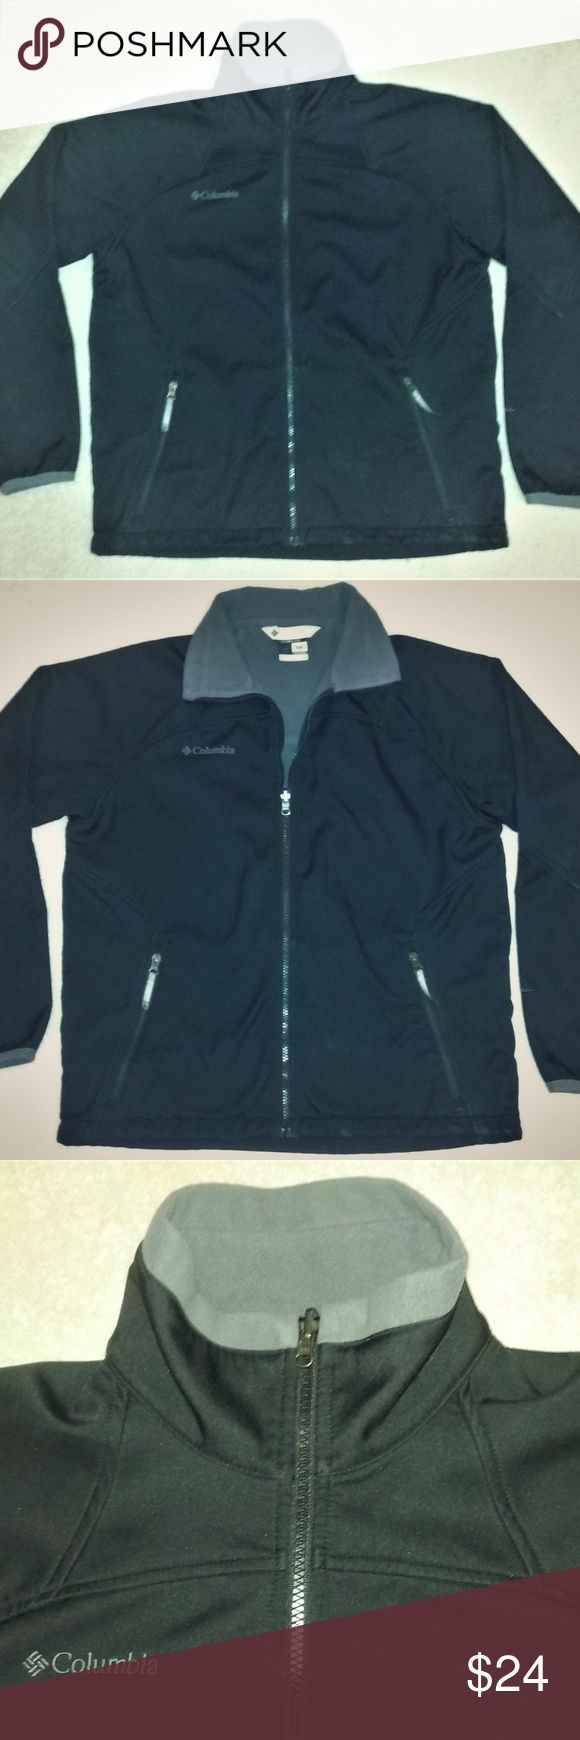 Columbia Men Black Interchange Jacket Size Medium This men's Columbia jacket is in great pre-owned shape! Free of any defects and odors. Columbia Jackets & Coats